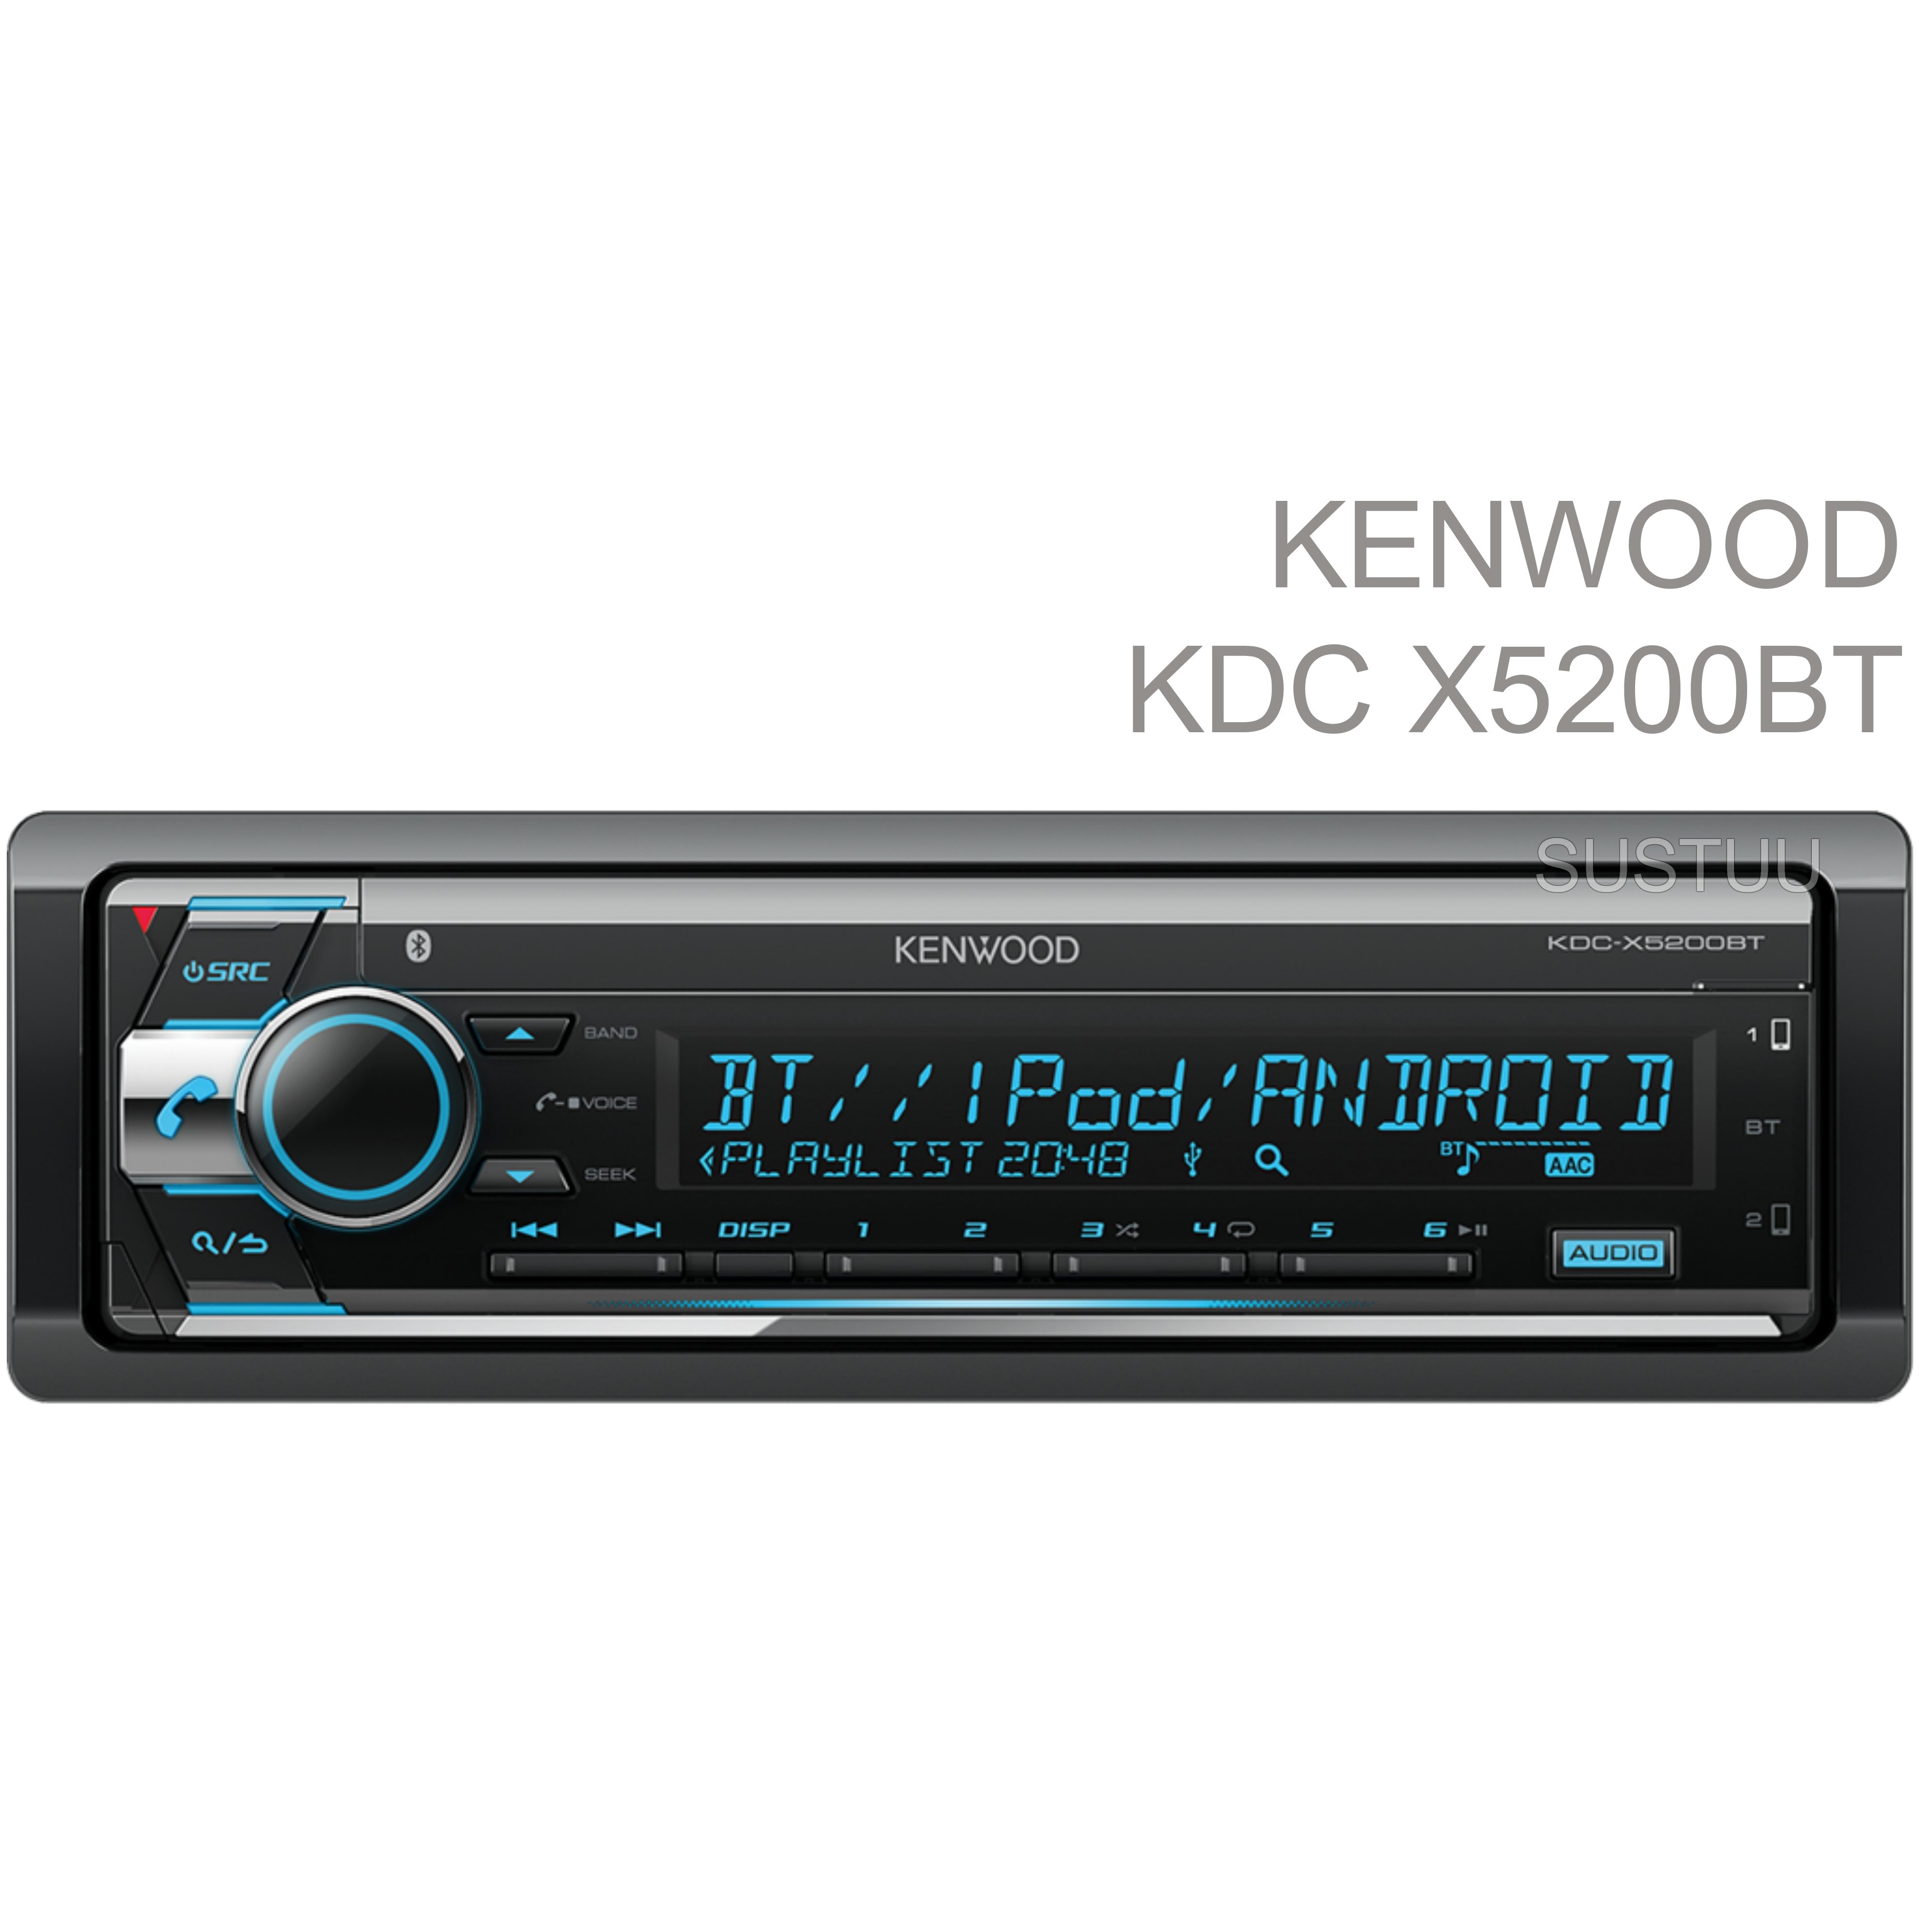 Kenwood Car Stereo|Radio|FLAC|USB|AUX|Bluetooth|iPod-iPhone-Android|Illumination